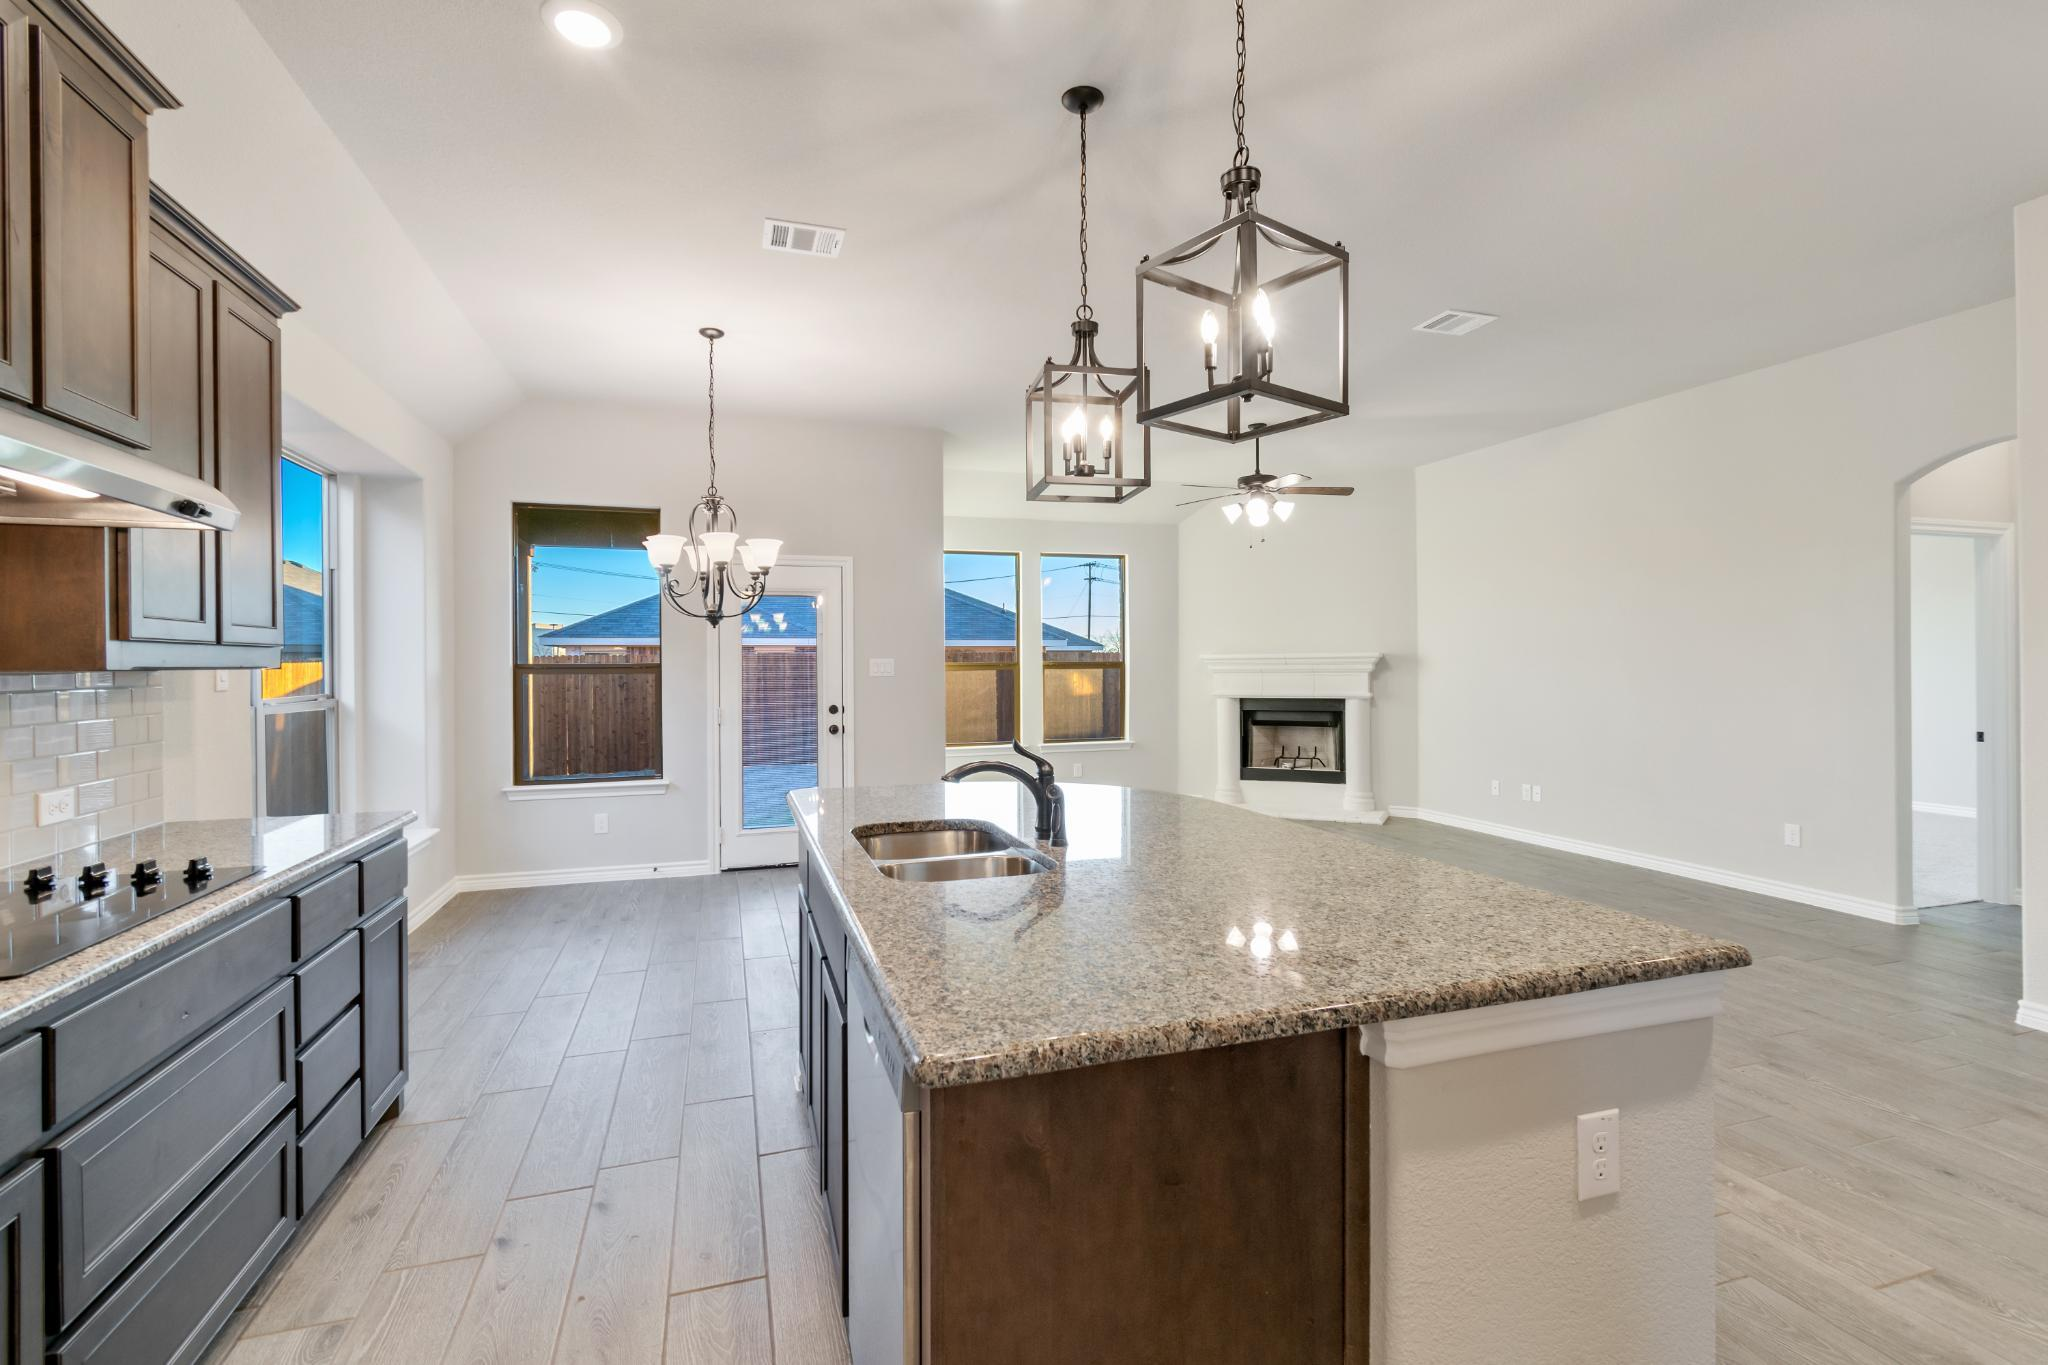 Kitchen featured in the 2001 By Antares Homes in Fort Worth, TX